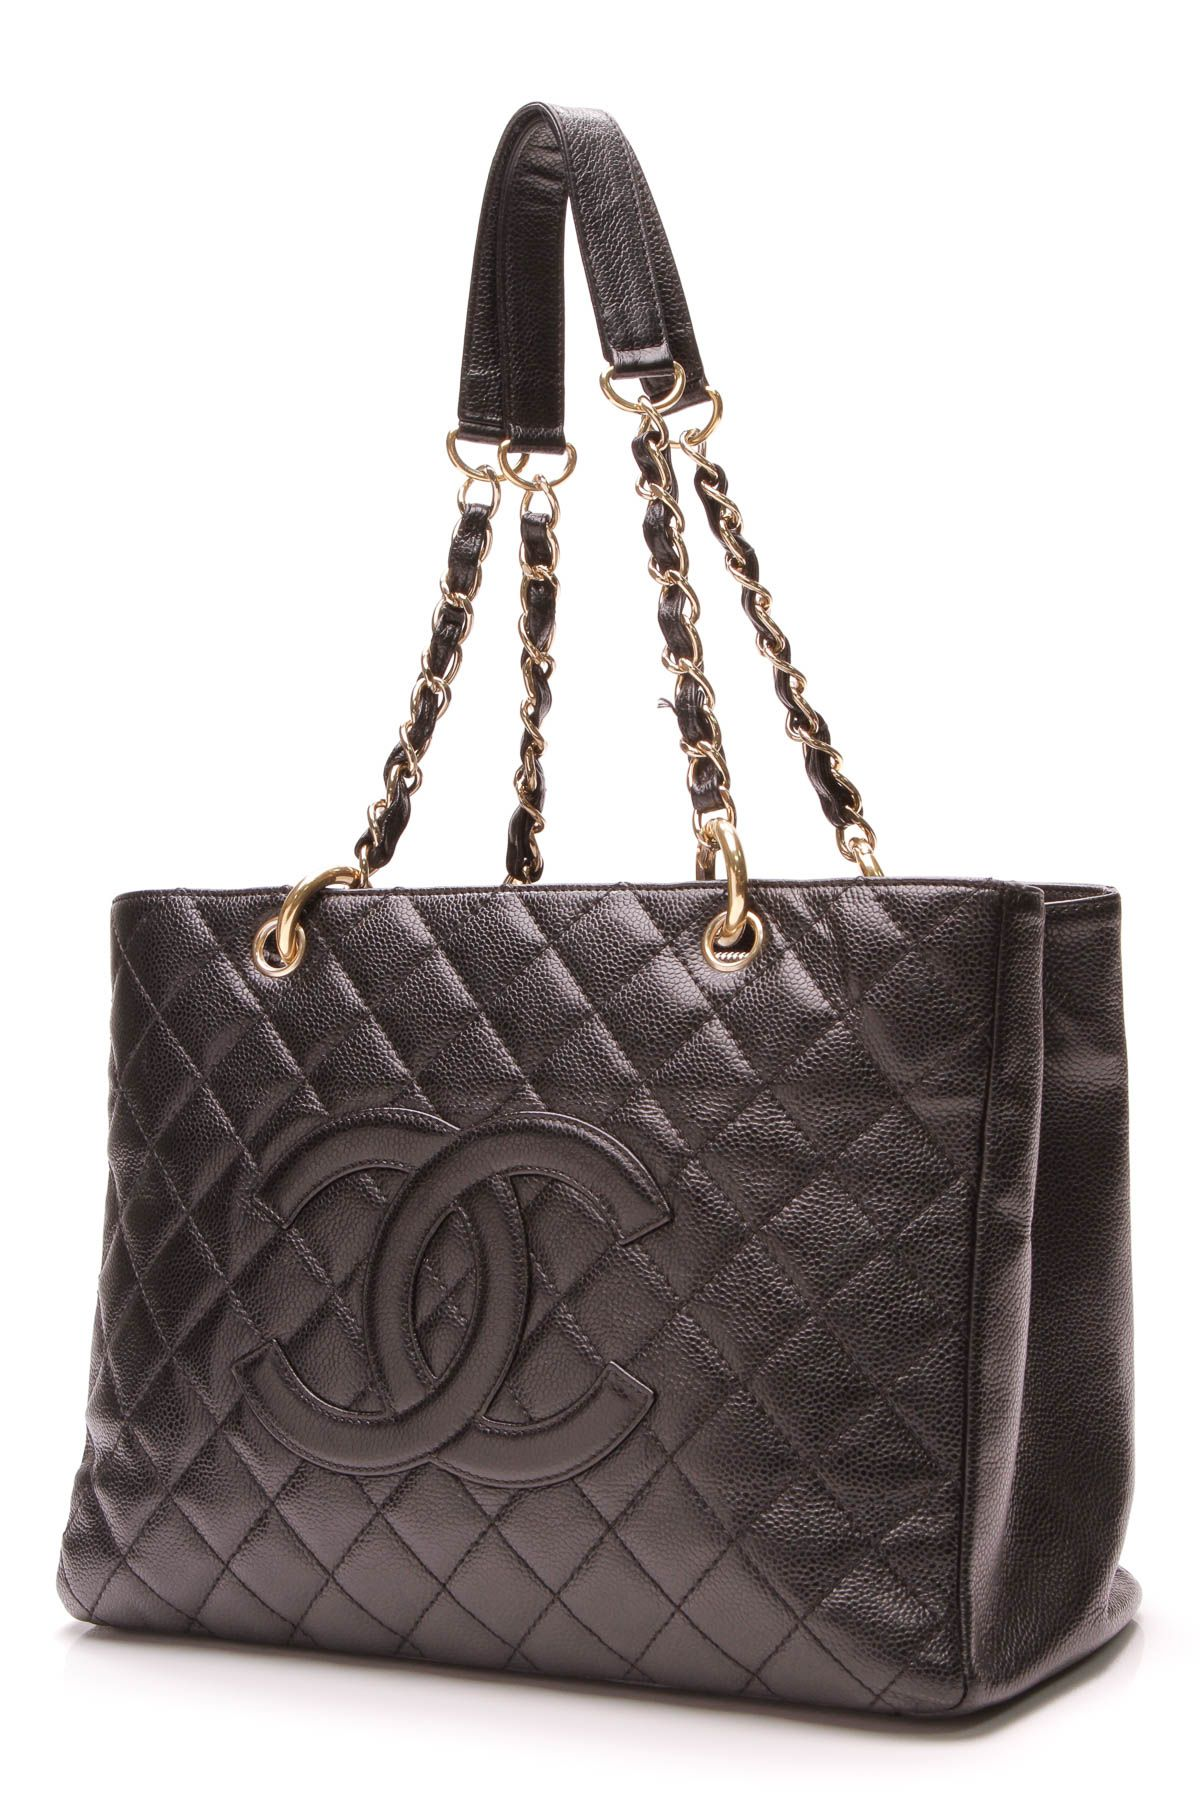 fad78c83e5b Chanel GST Grand Shopping Tote Bag - Black Caviar | Crazy for Coco ...